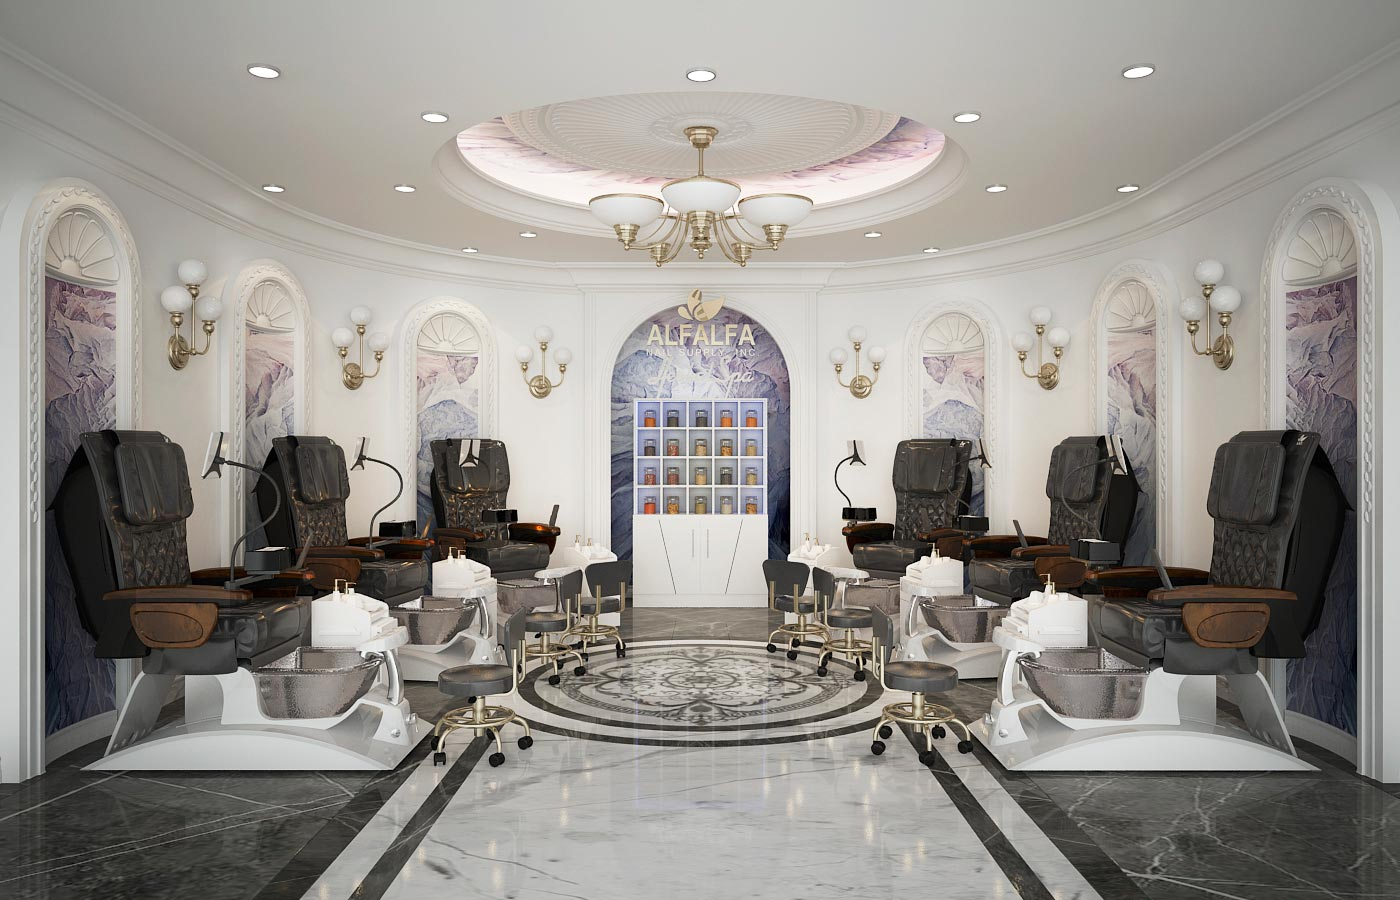 ANS Argento SE Pedicure Chair Installed in a Luxury Nail Salon